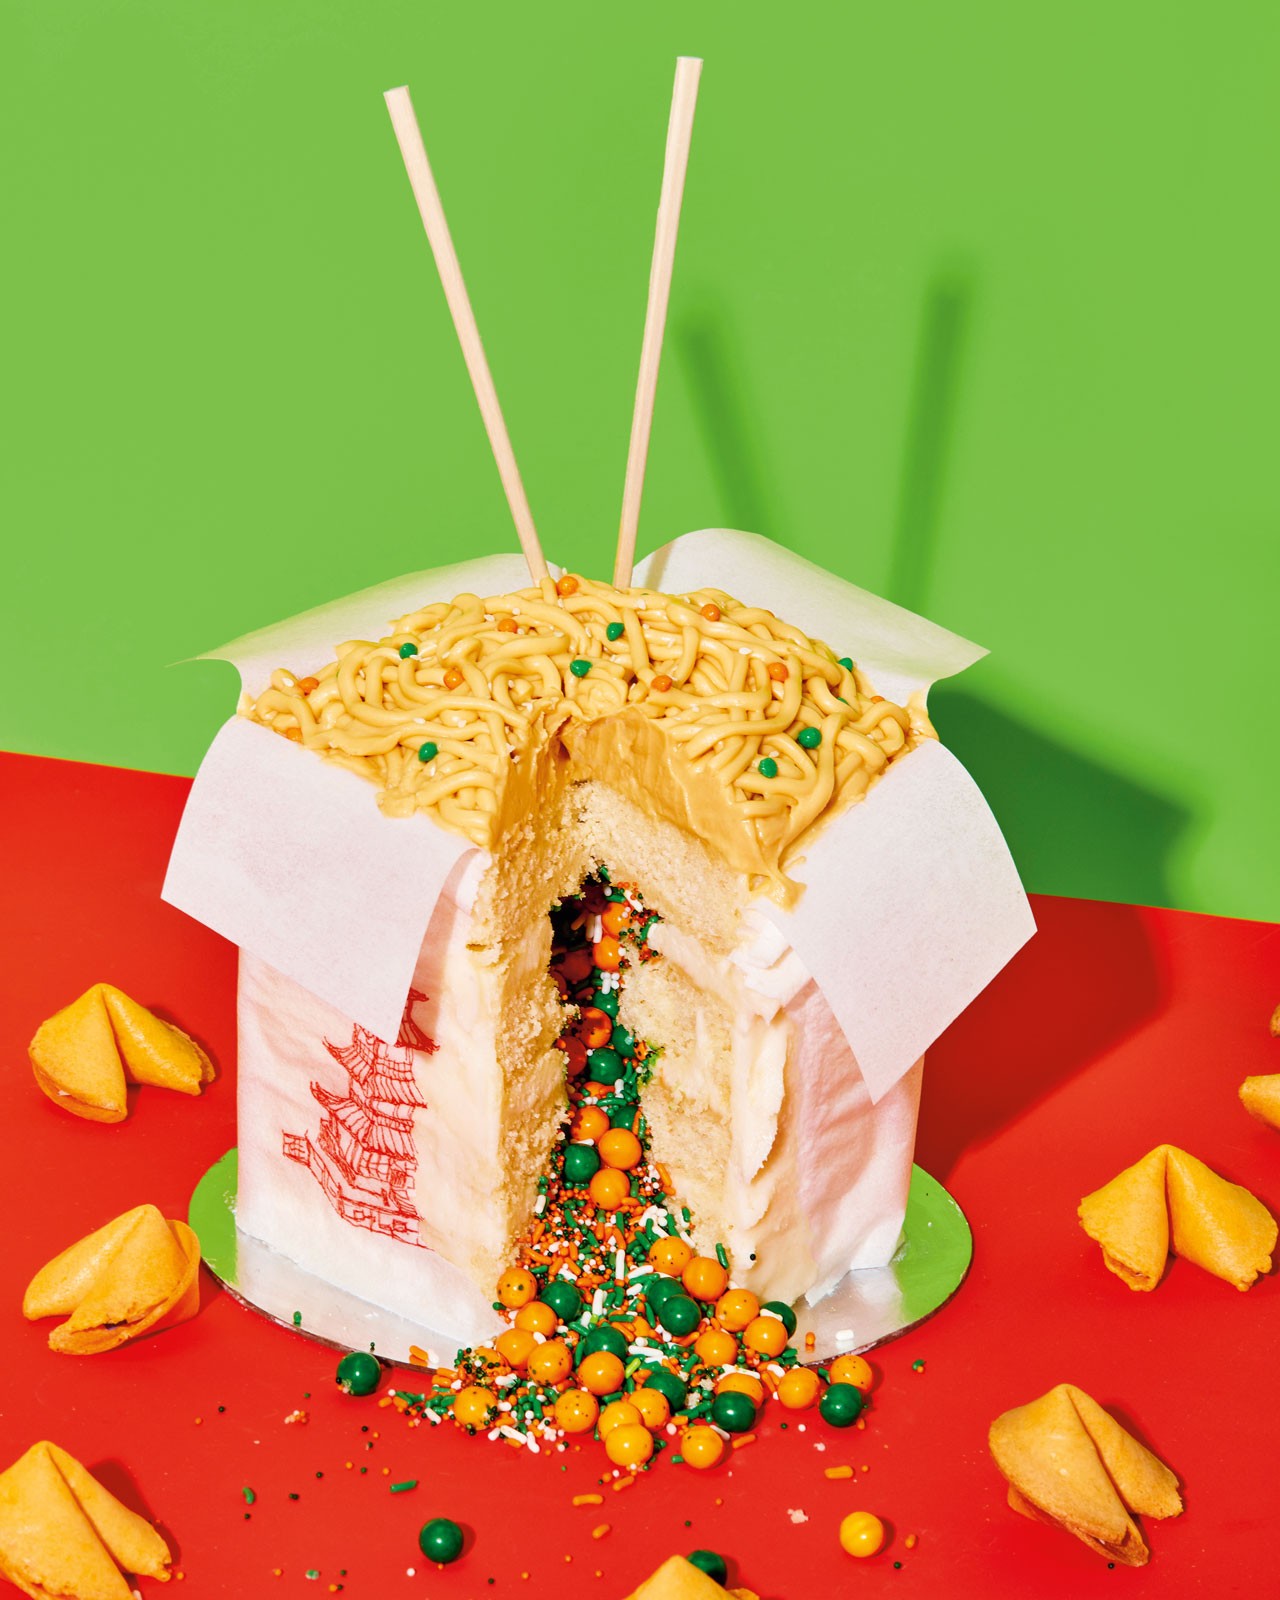 chinese takeout cake from the Power of Sprinkles cookbook